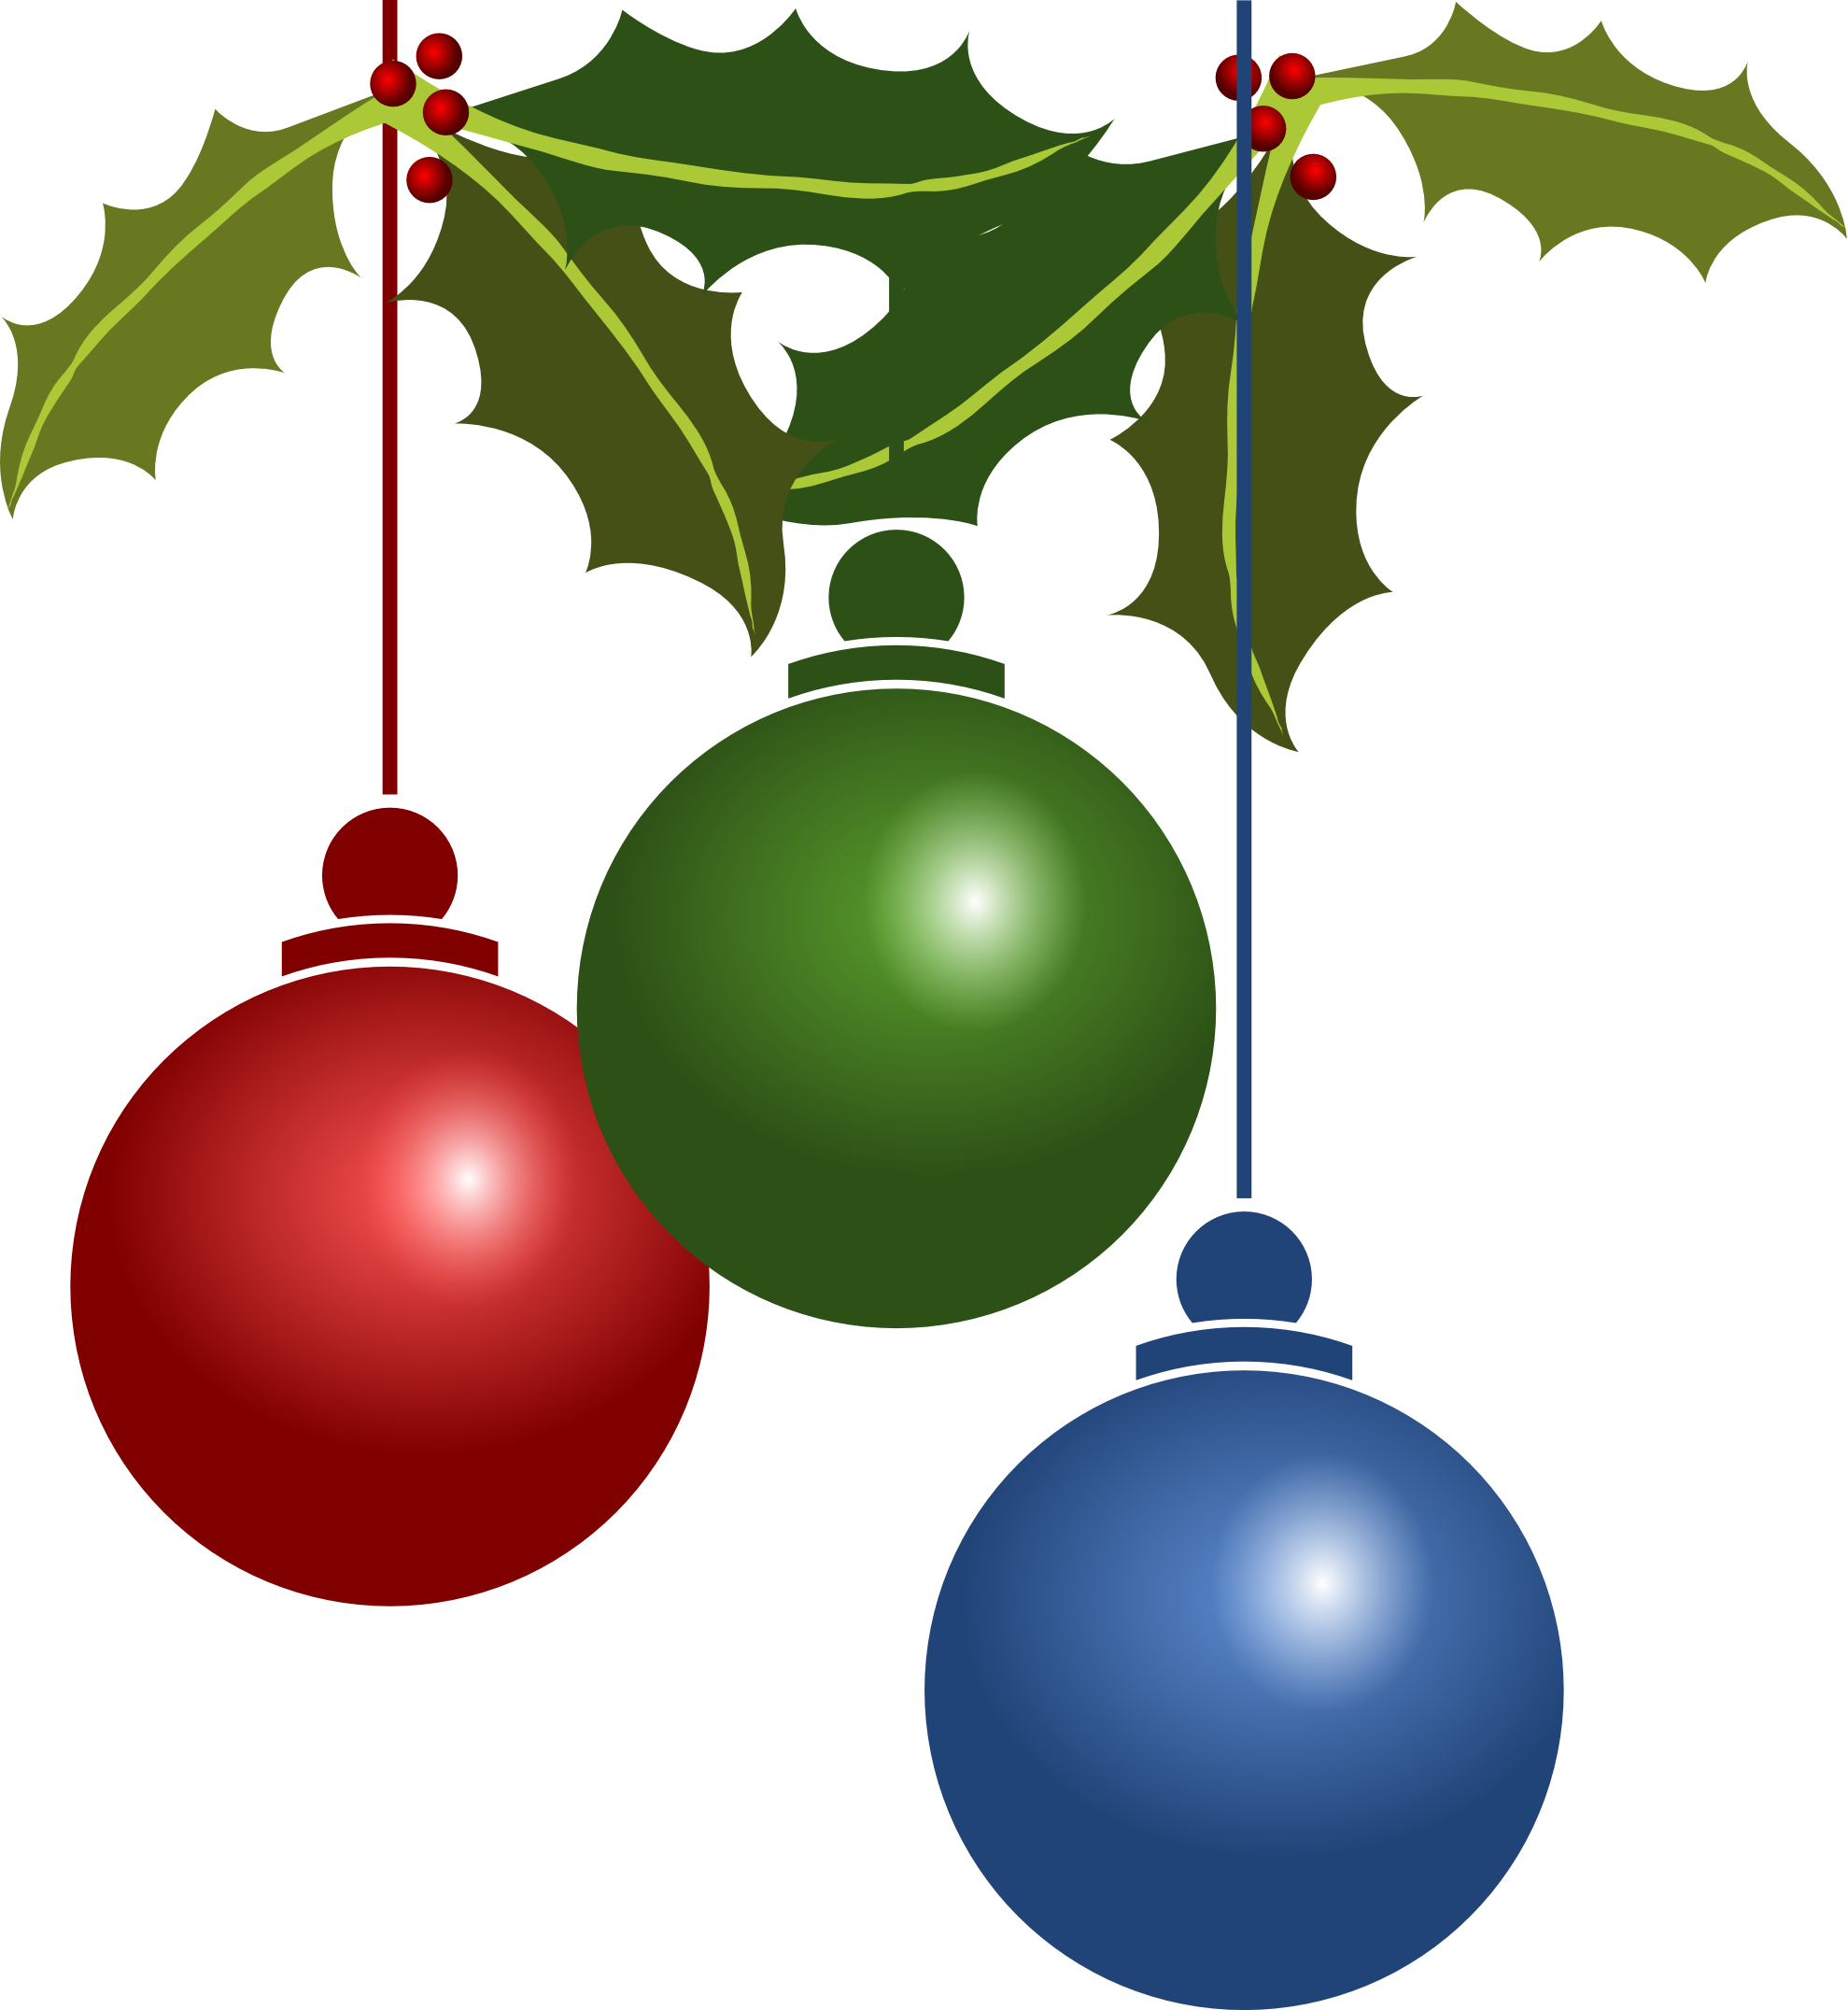 PNG File Name: Christmas Ornament PlusPng.com  - Christmas Ornament PNG